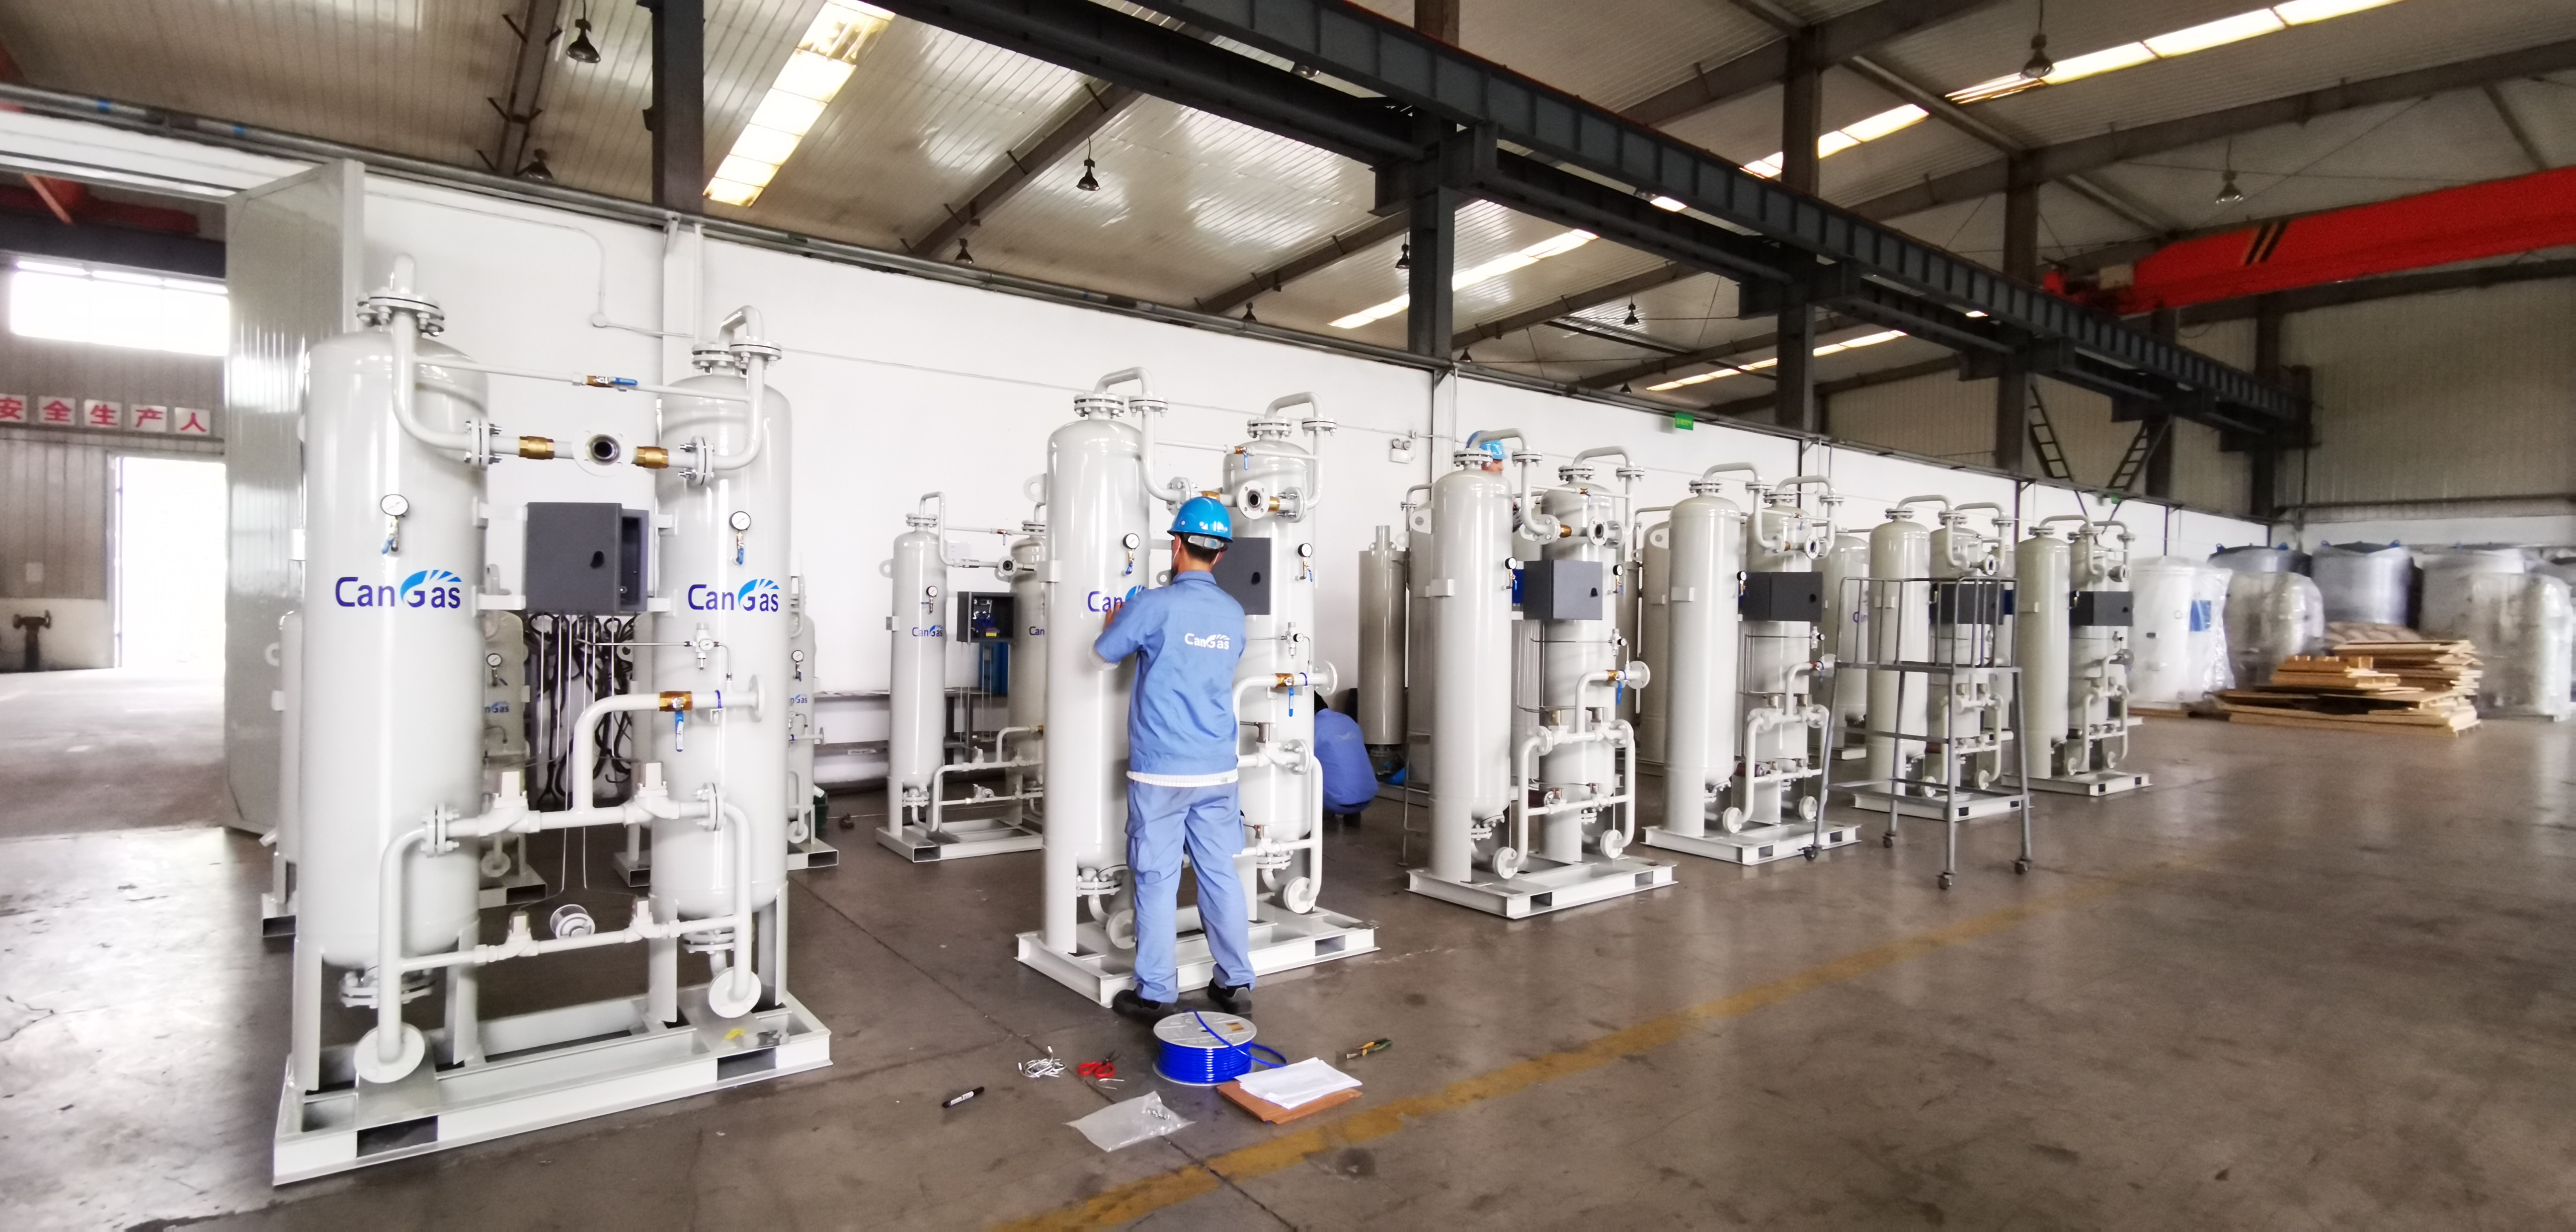 CAN GAS Onsite Fully automatic control PSA medical Oxygen generator plant - KingCare   KingCare.net